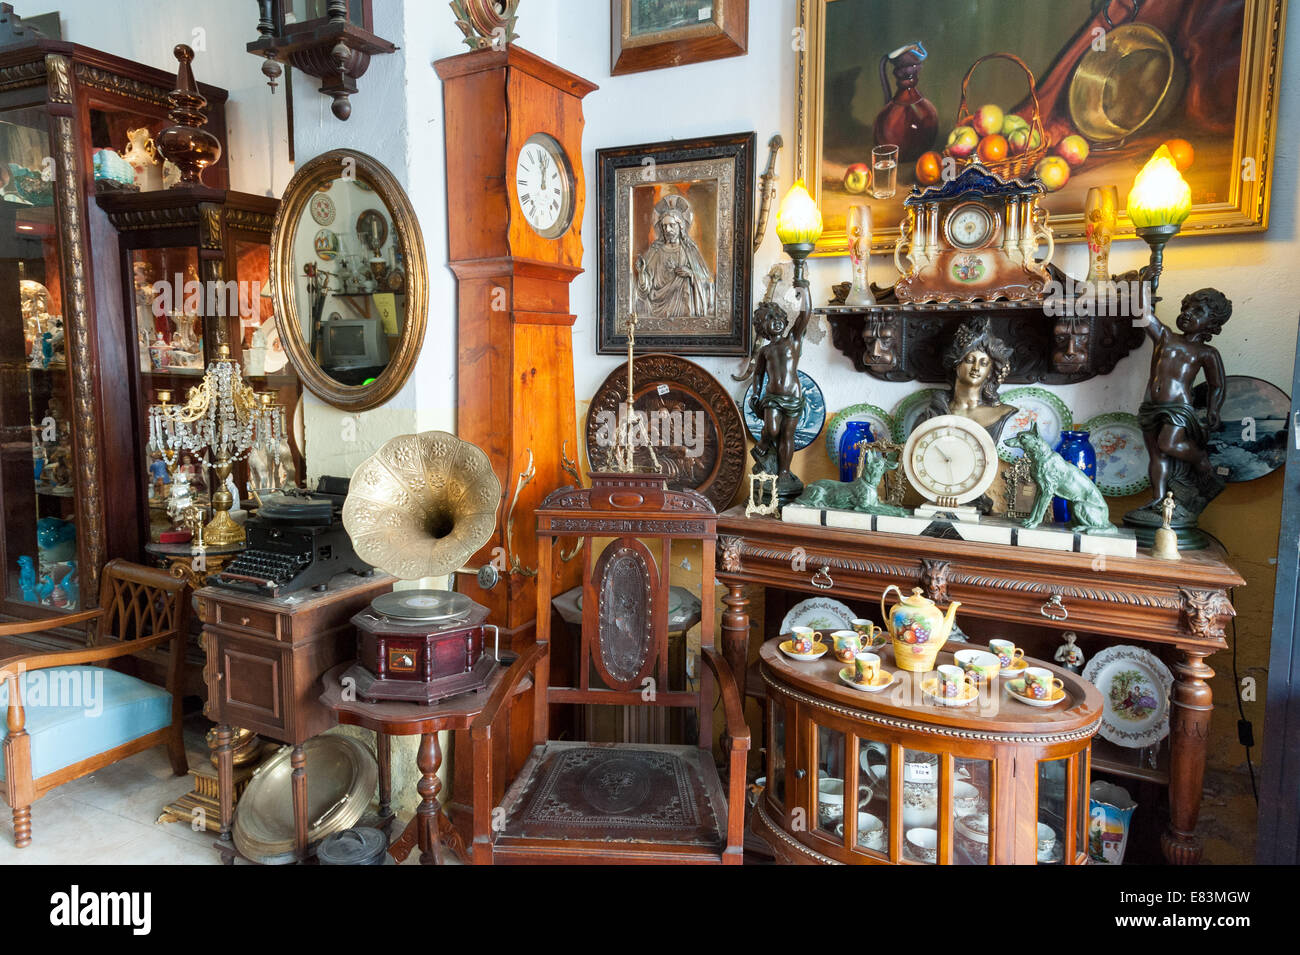 Old Antique Wood Furniture And Household Items In Antiques